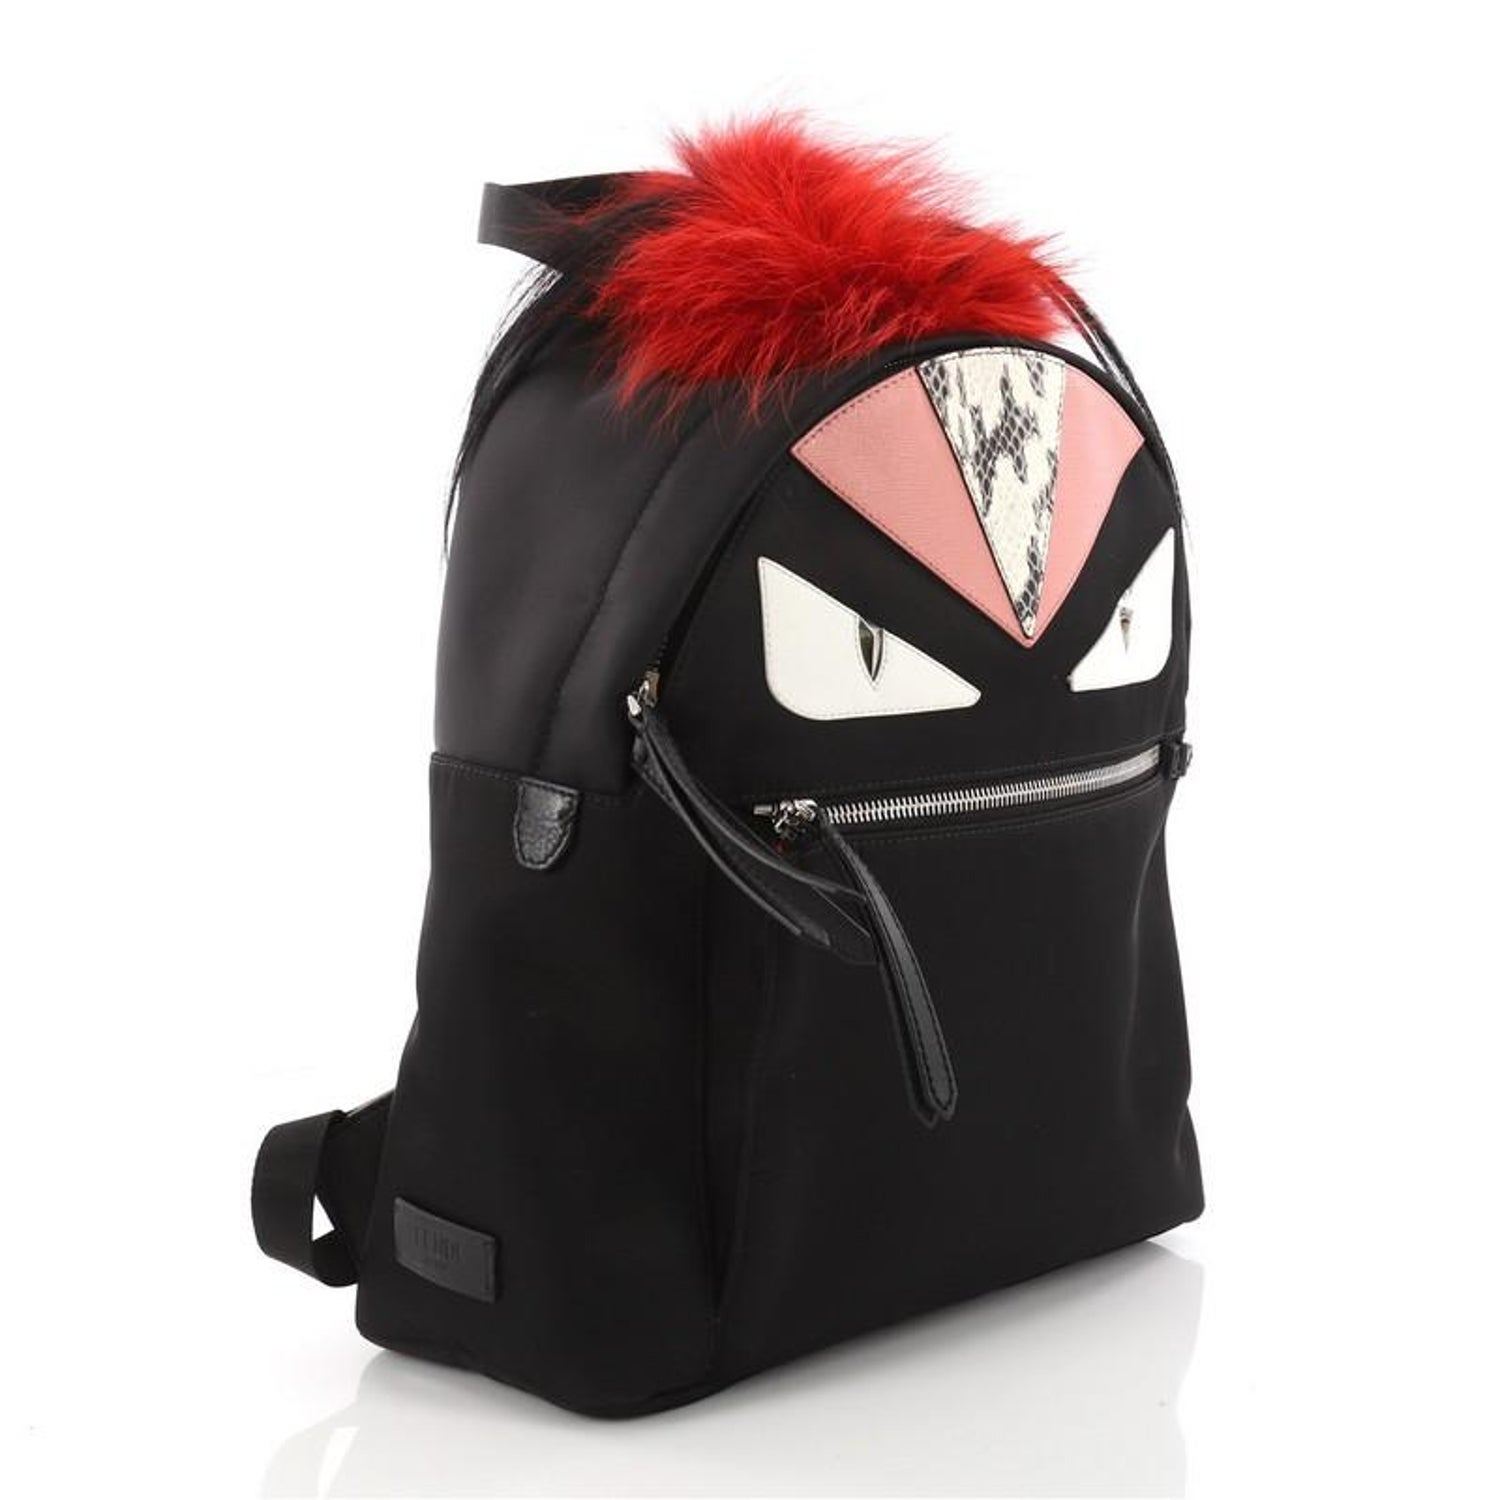 Fendi Monster Backpack Nylon with Leather and Fur Large at 1stdibs c71d47efac4e1